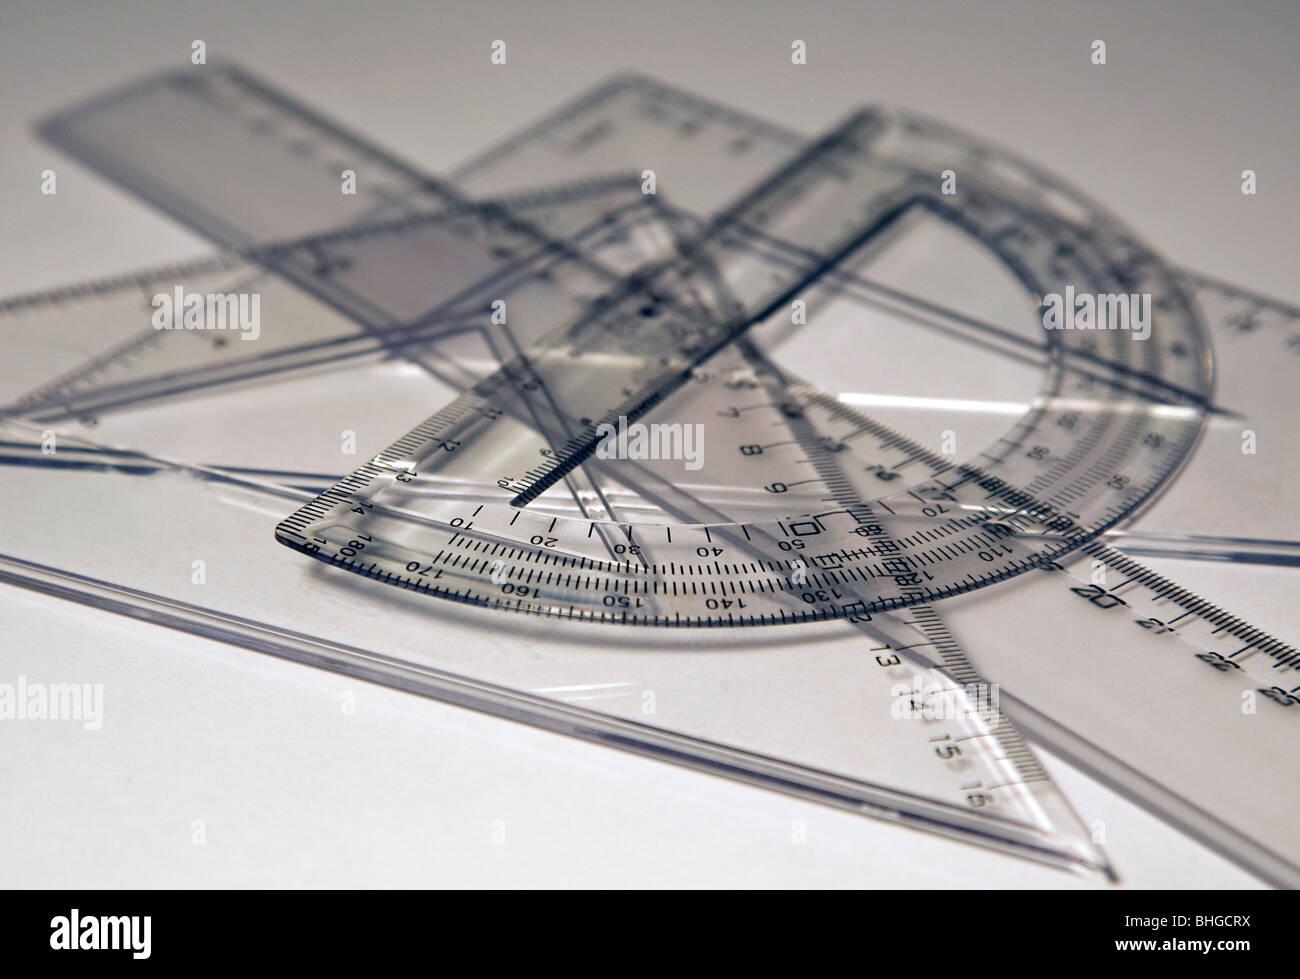 Rulers and set squares - Stock Image